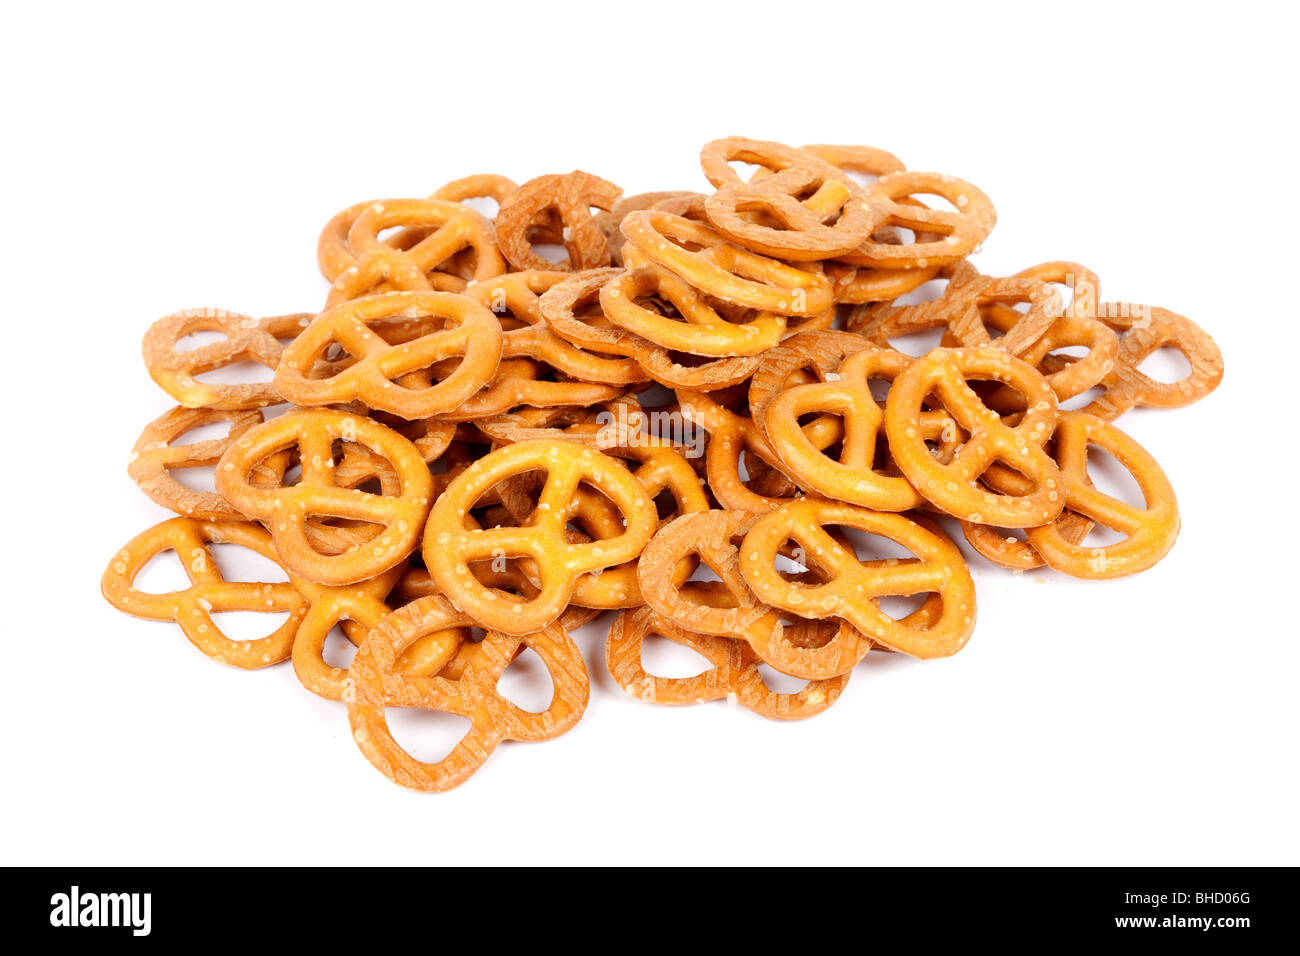 Close up of a pile of delicious mini pretzels - Stock Image